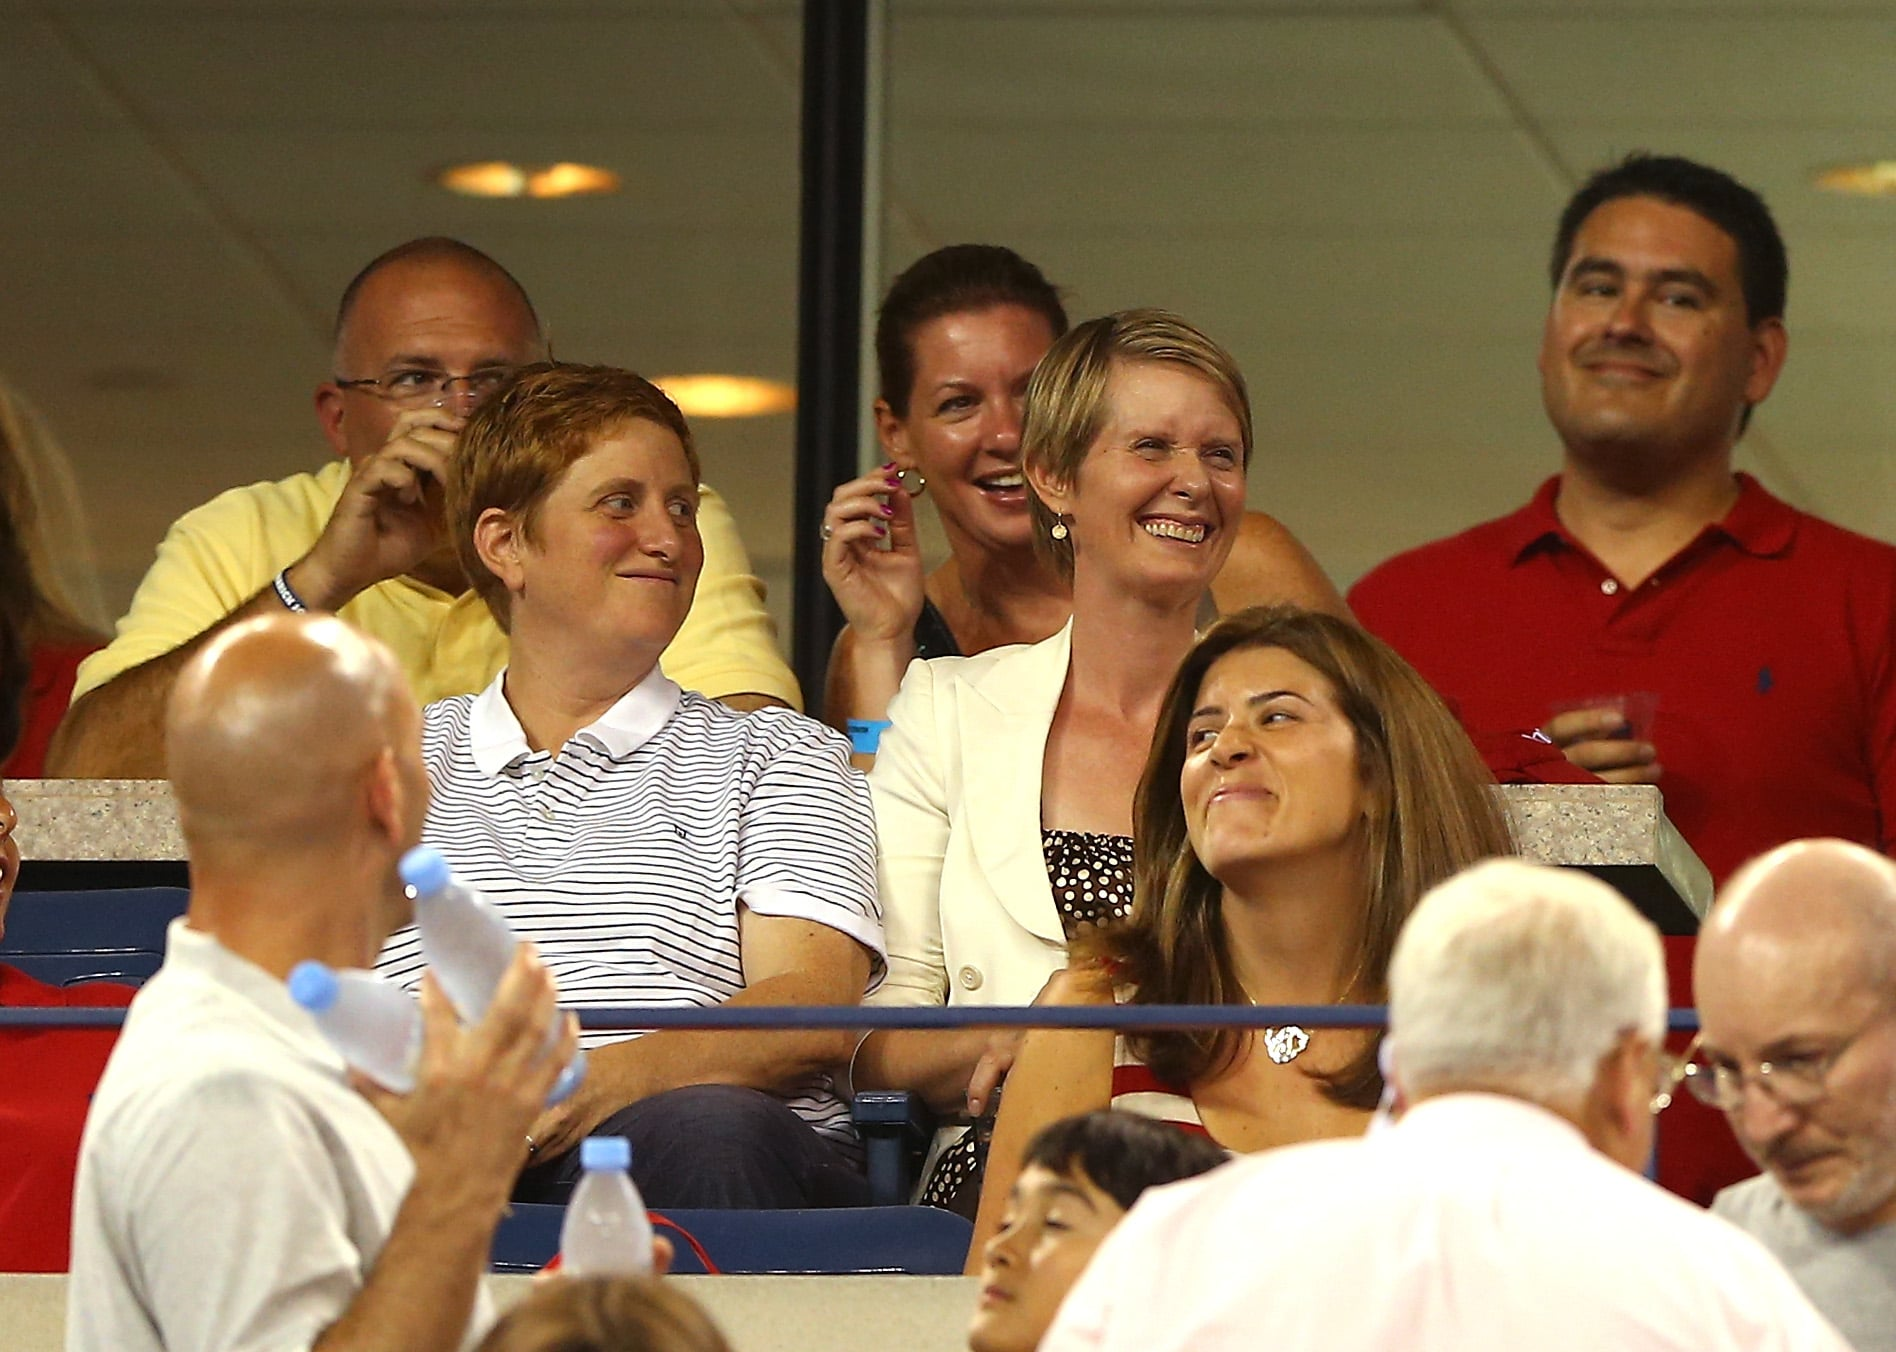 Cynthia Nixon took in one of the US Open matches with her wife Christine Marinoni.